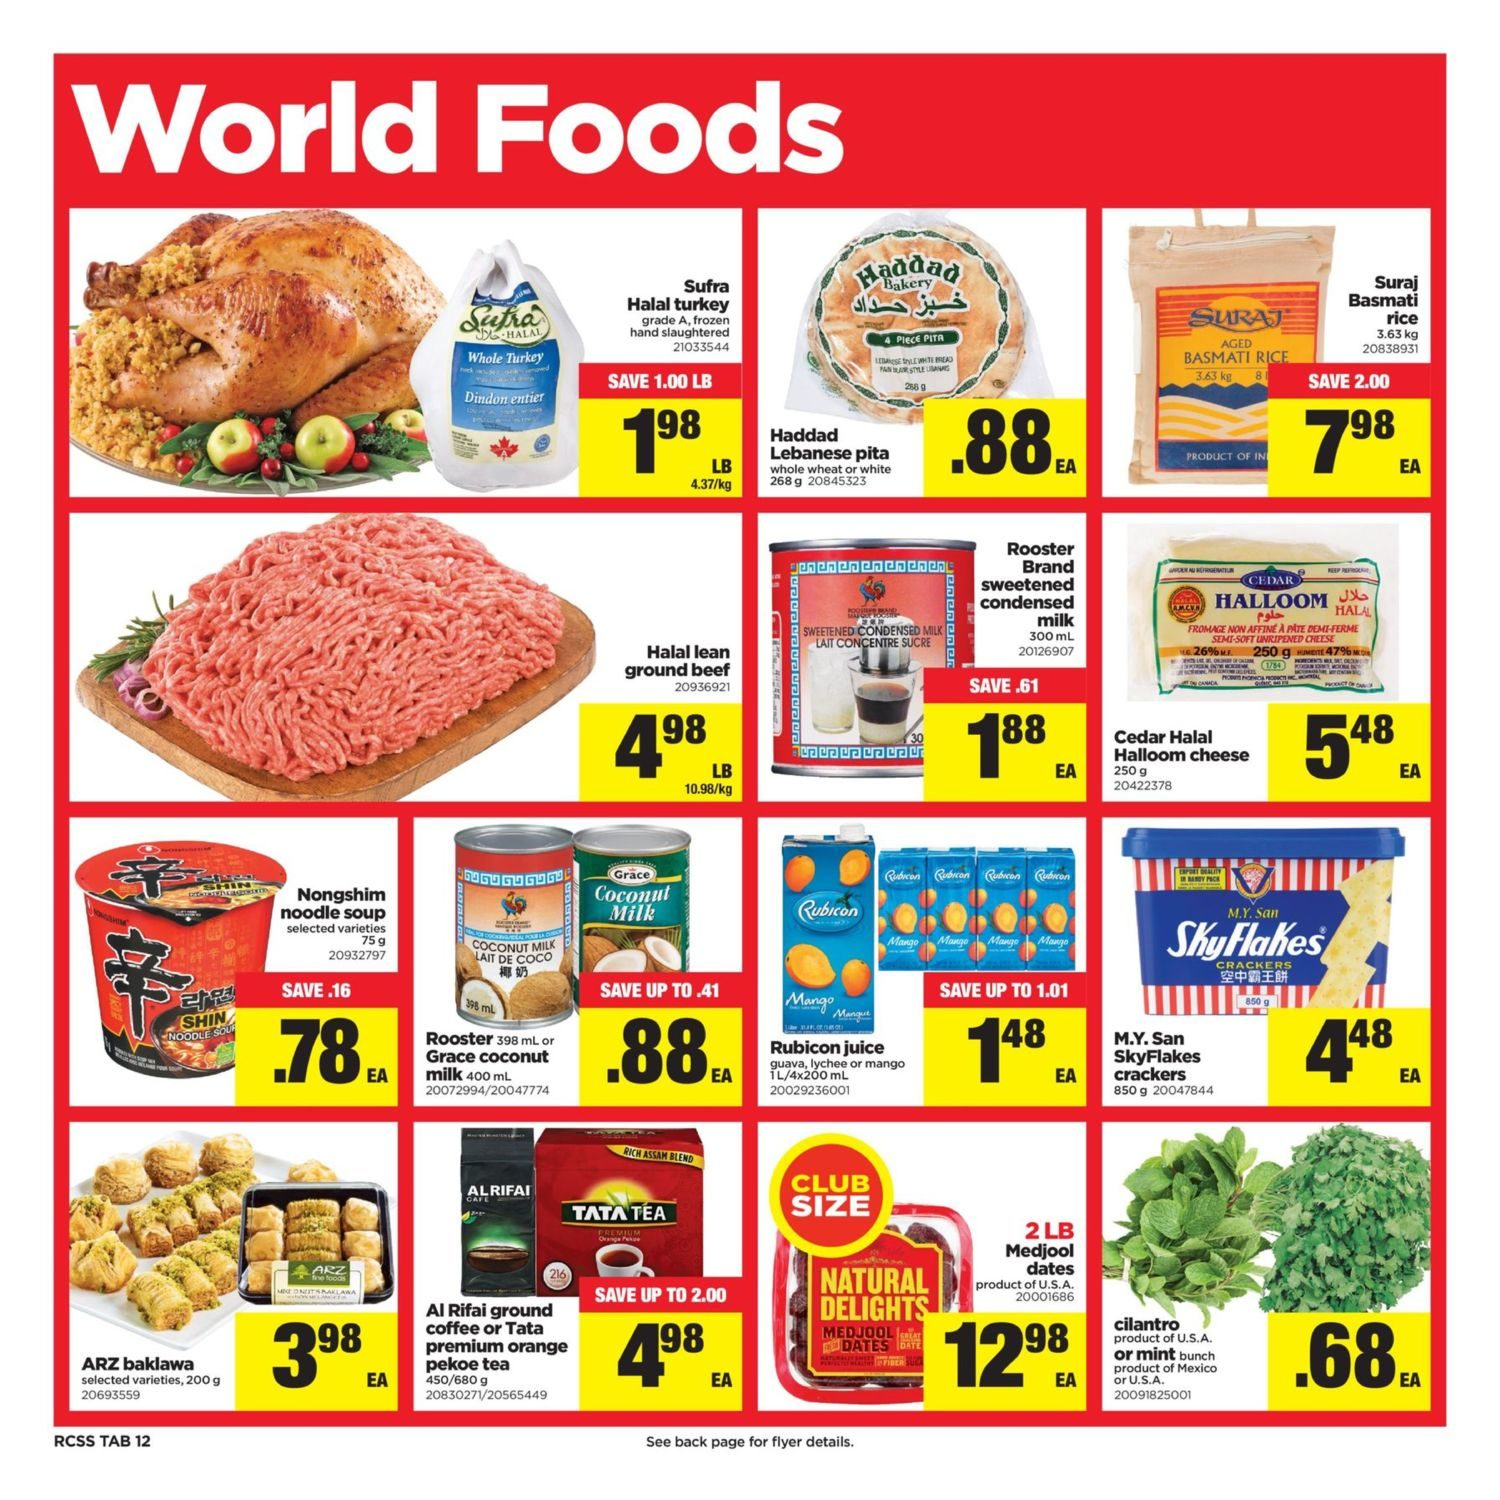 Real Canadian Superstore Weekly Flyer Dec 14 20 Minute Maid Homestyle Guava 1l